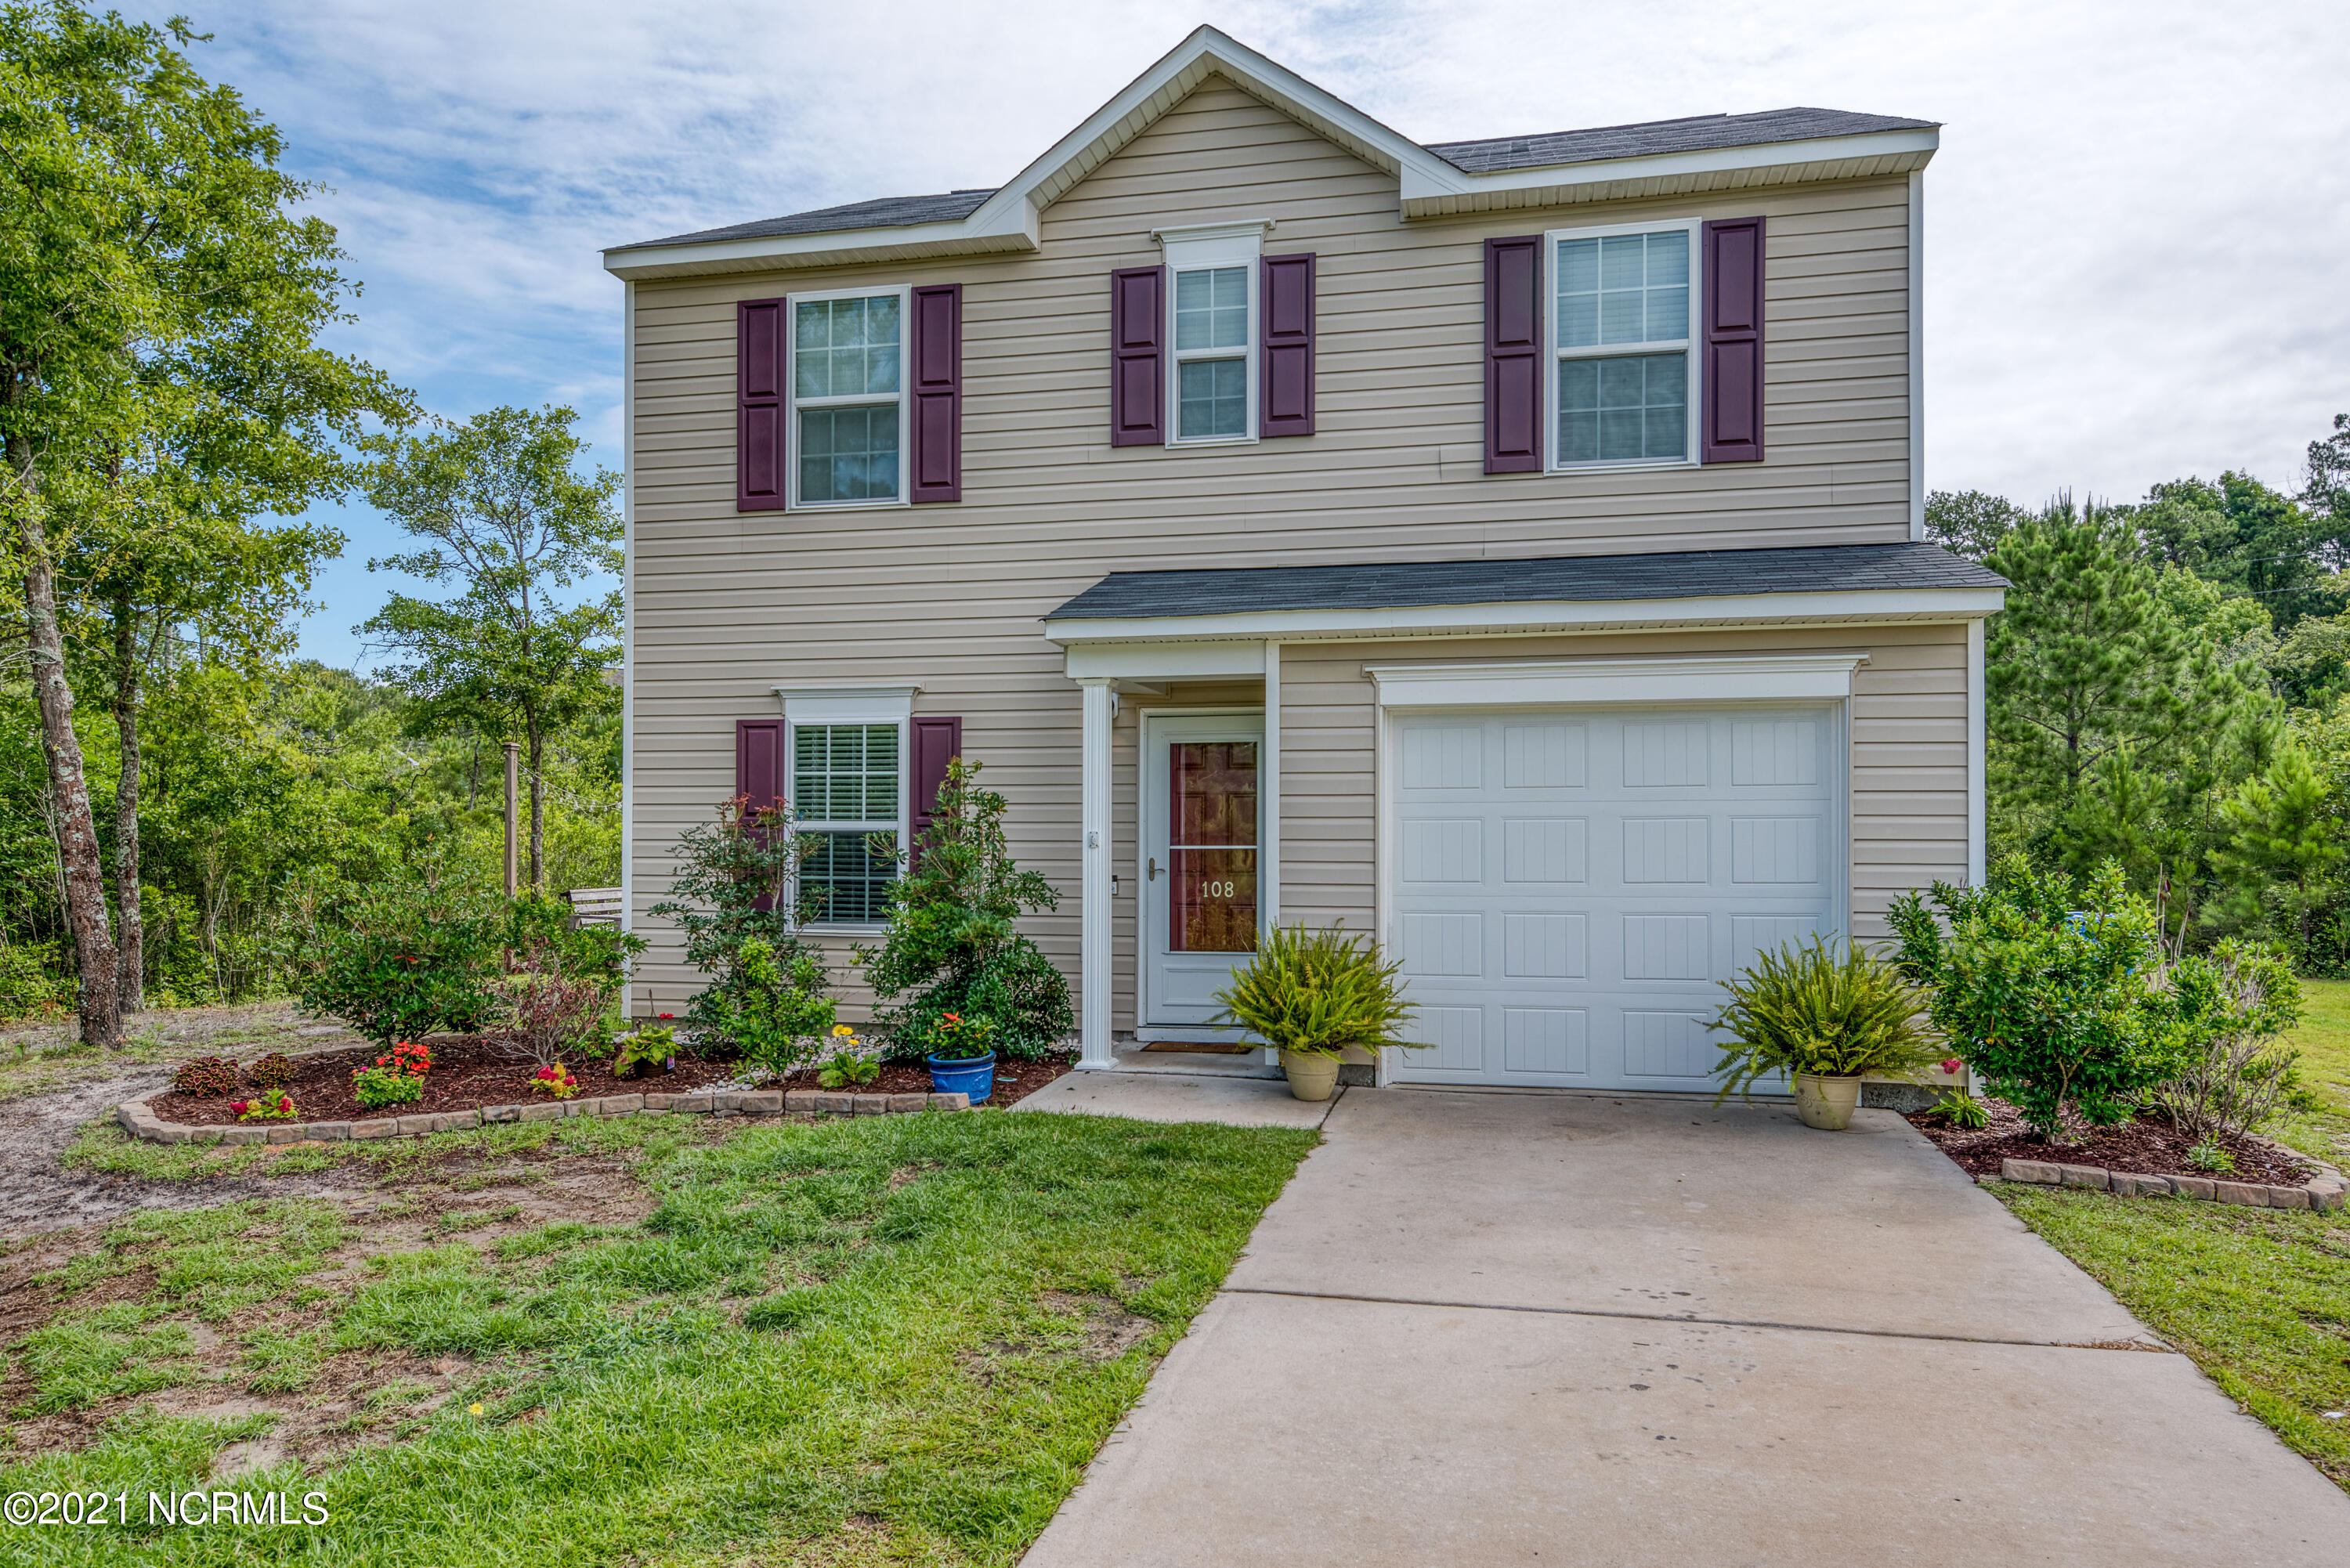 This 3 bedroom, 2.5 bath home built in 2017 is located in The Reserve at Holly Ridge, only minutes from beaches, MARSOC, Stone Bay, and Camp LeJeune. This charming home is a perfect place to call home or a great second home getaway being less than 5 miles to the beautiful beaches of Topsail Island. When walking in from the garage, the main floor features the laundry room, a half bathroom, and a nice open floor plan with the living / dinning area and kitchen. The 2nd floor features an owner's suite with private bath as well as 2 additional bedrooms and a loft! Schedule your showing before this one is gone!!